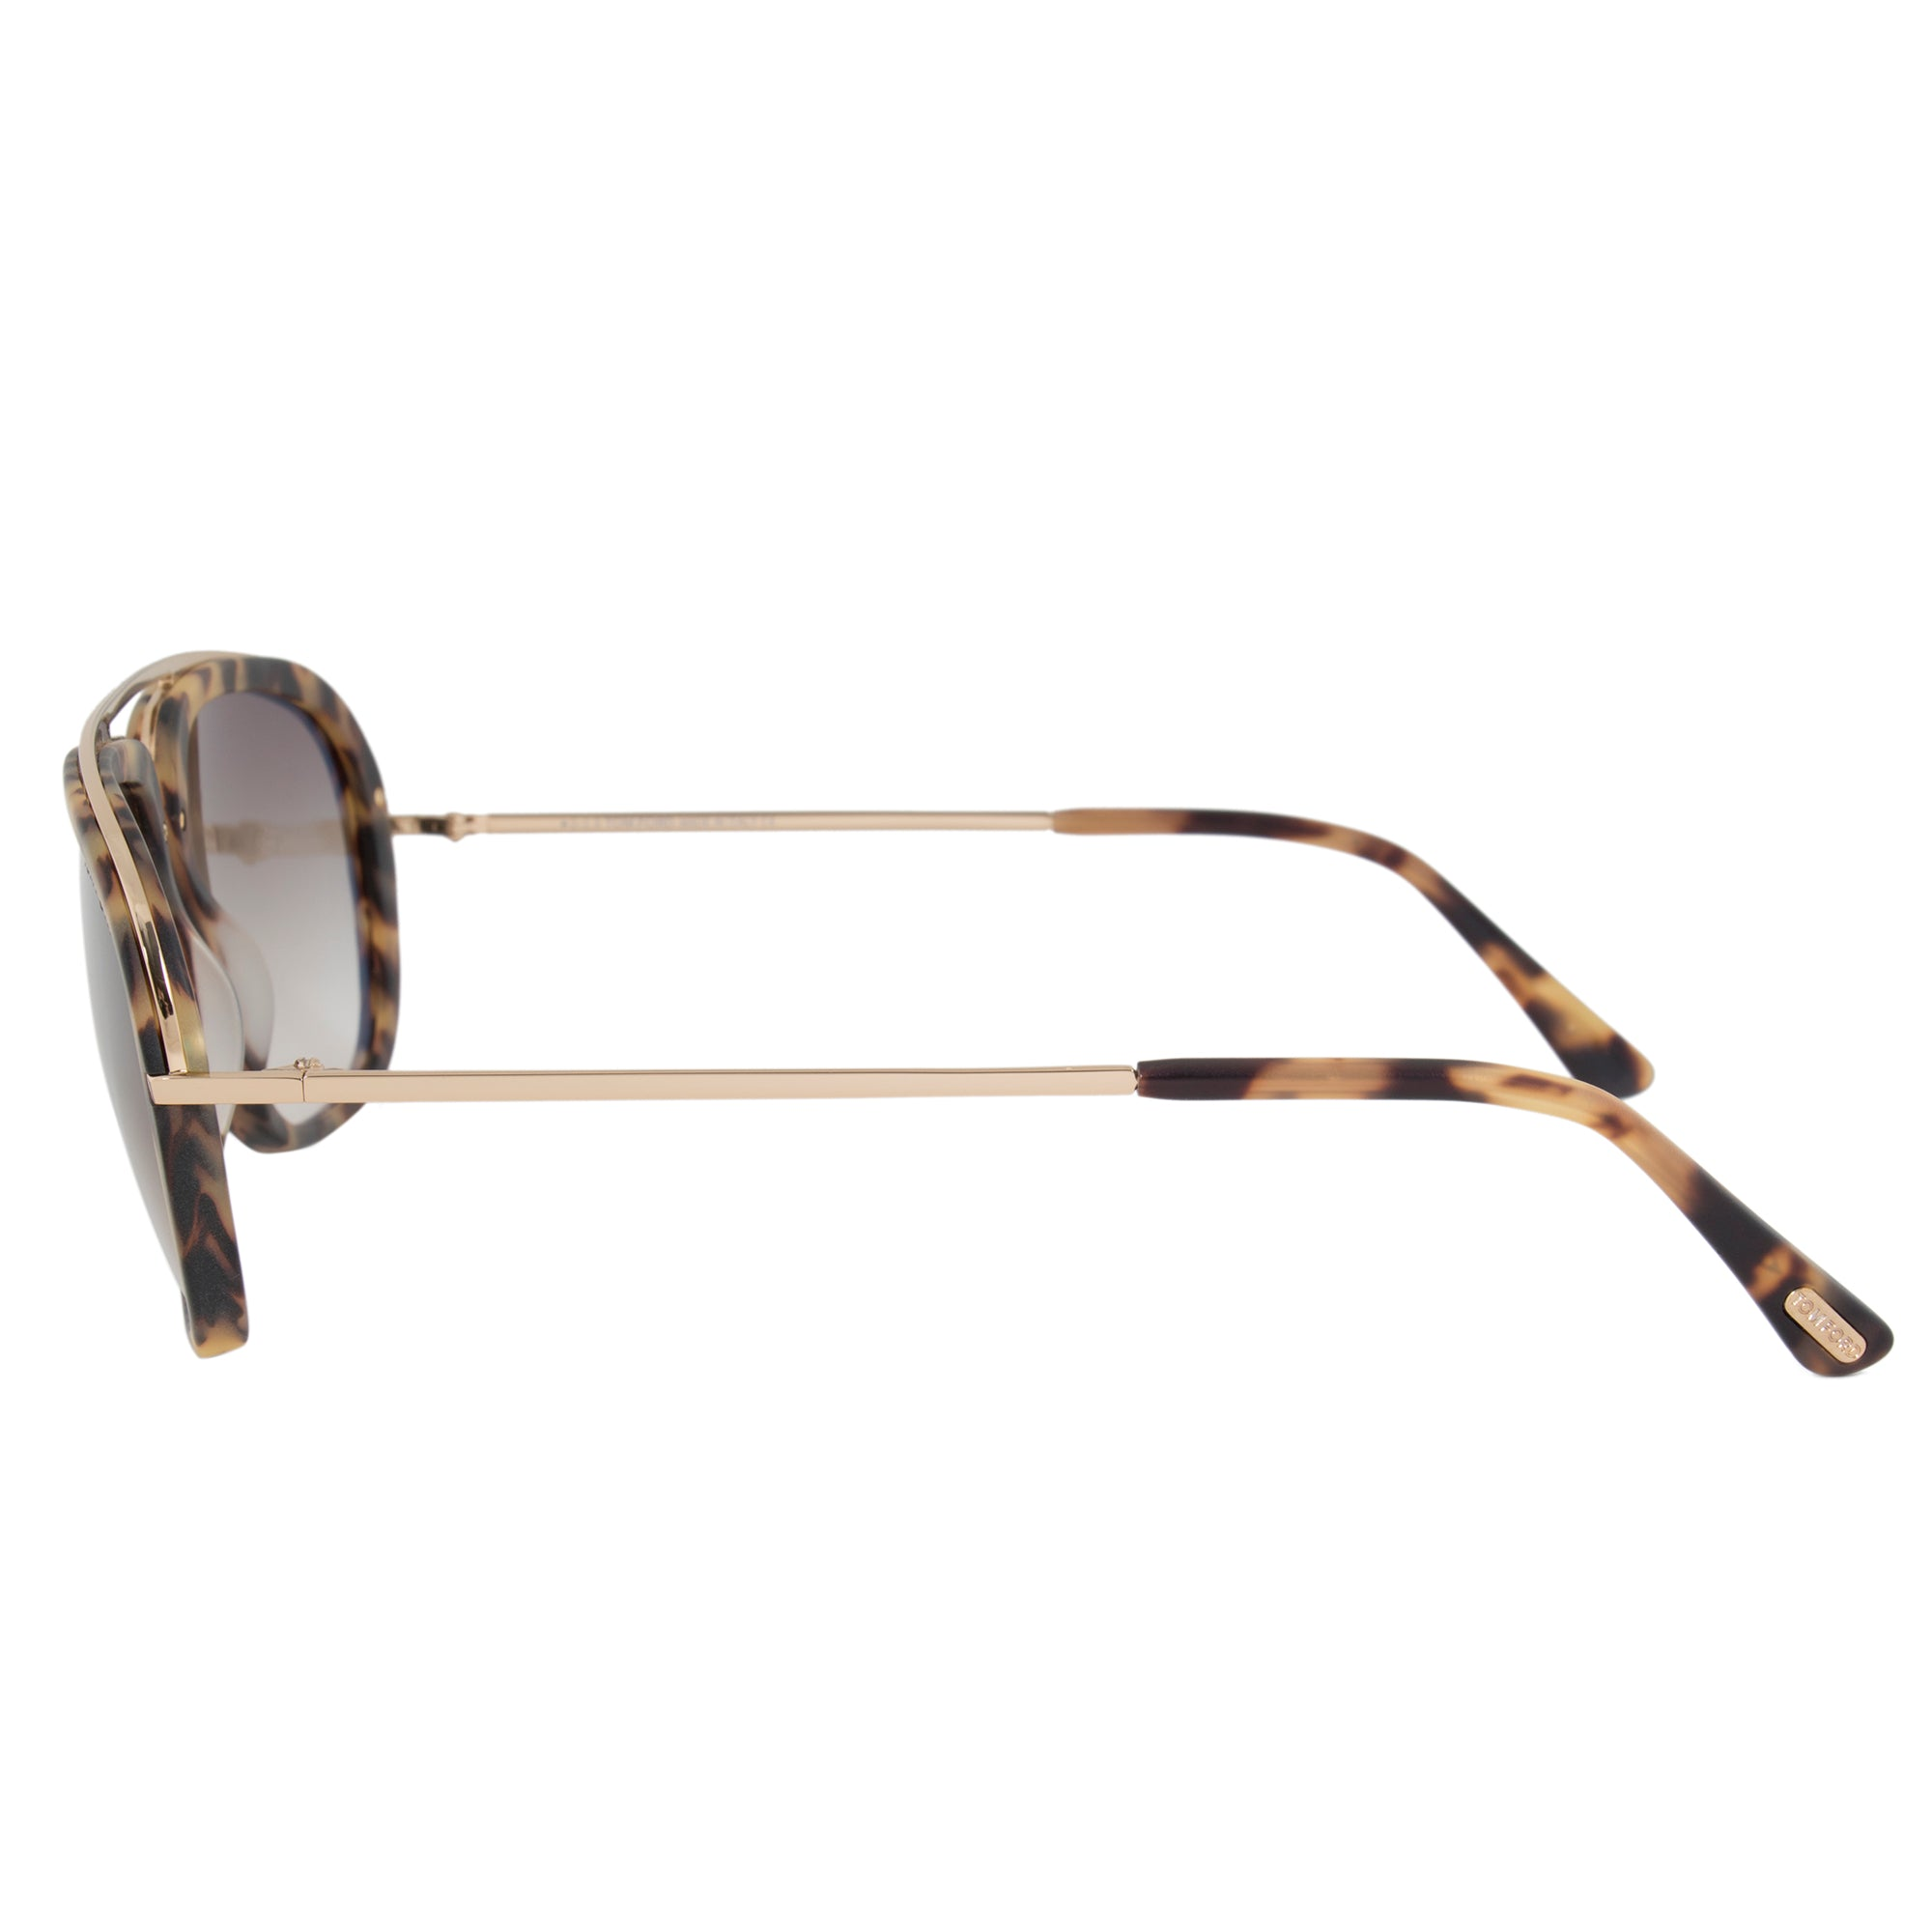 Tom Ford Johnson Men's Navigator Sunglasses FT0453 53F 57 | Matte Tortoise and Rose Gold Frame | Brown Gradient Lens